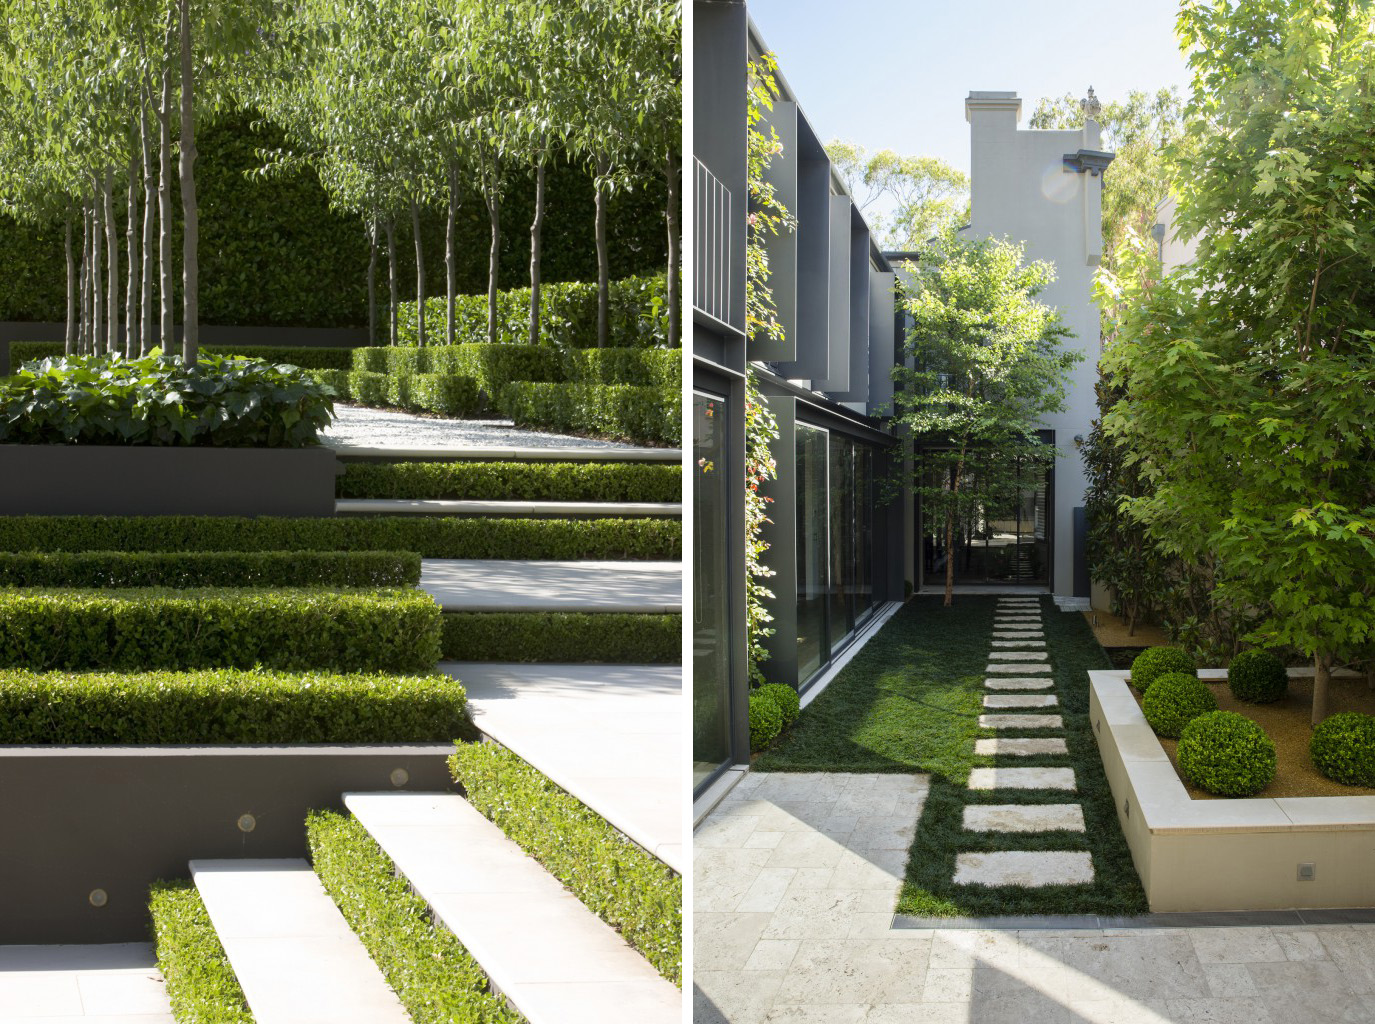 landscape modern garden design - photo #11